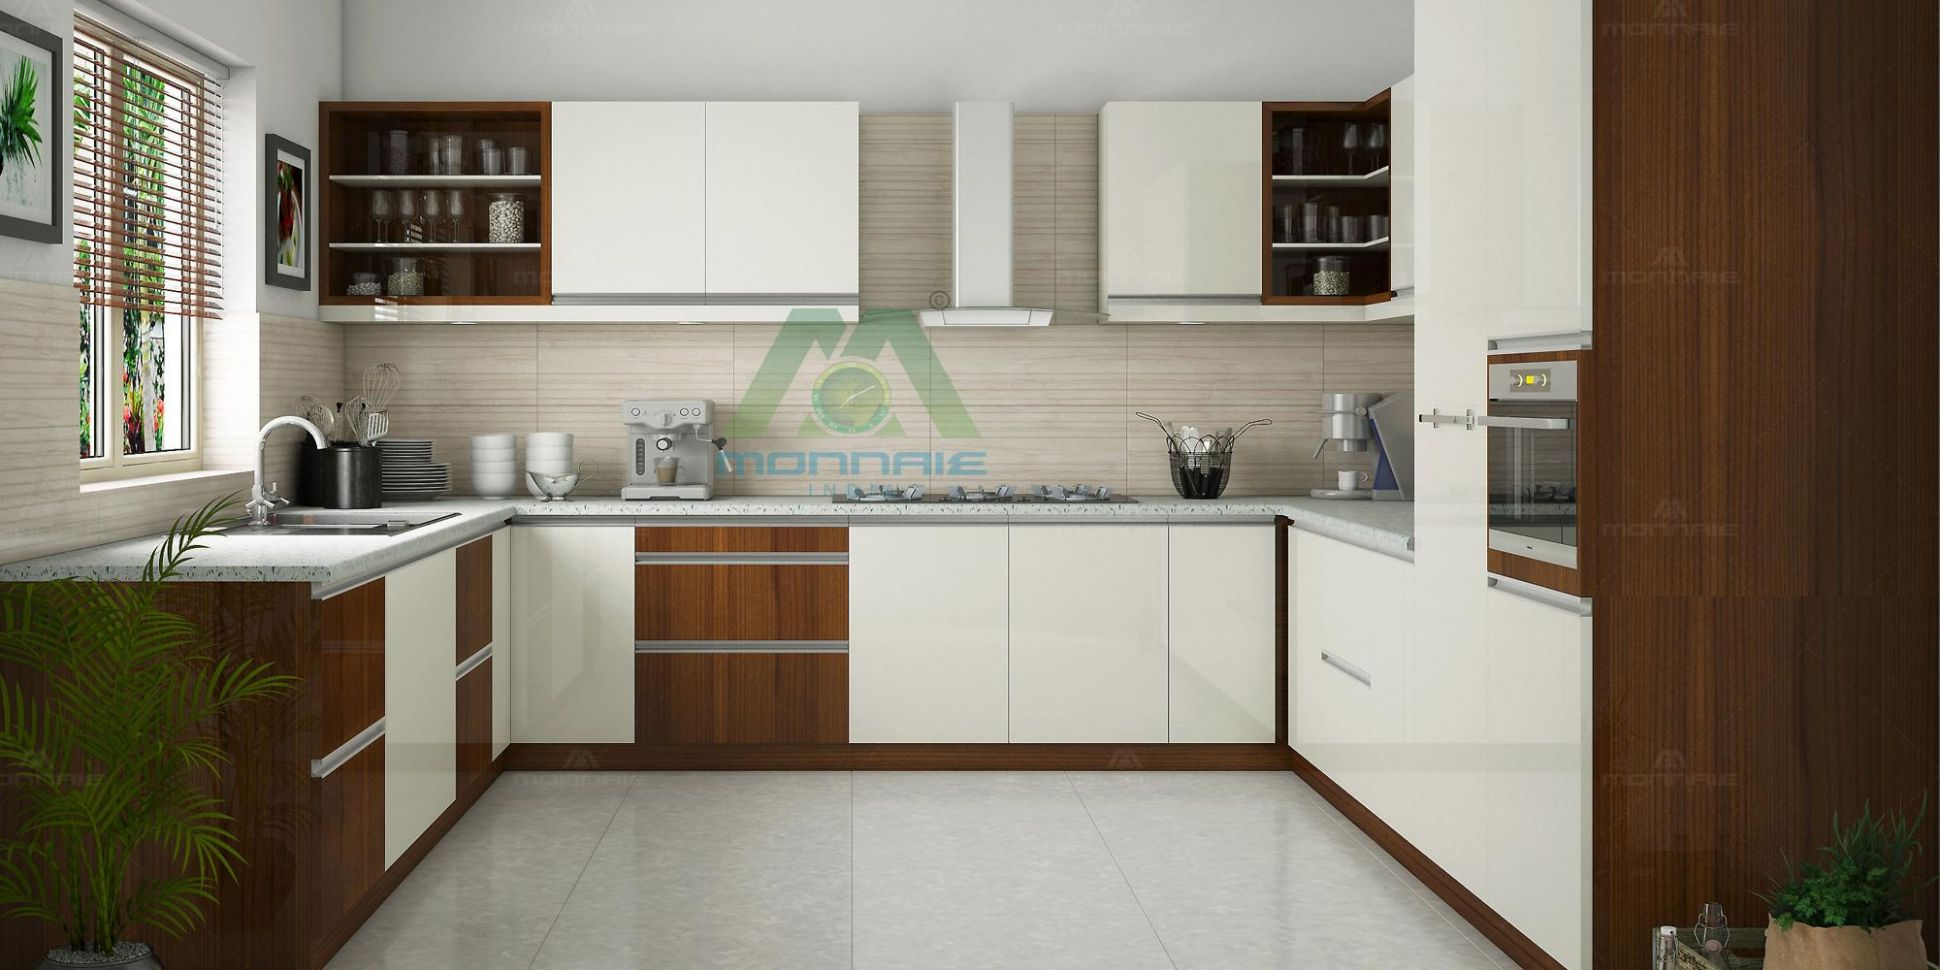 Kitchen Design Ideas Archives | Monnaie Architects and Interiors